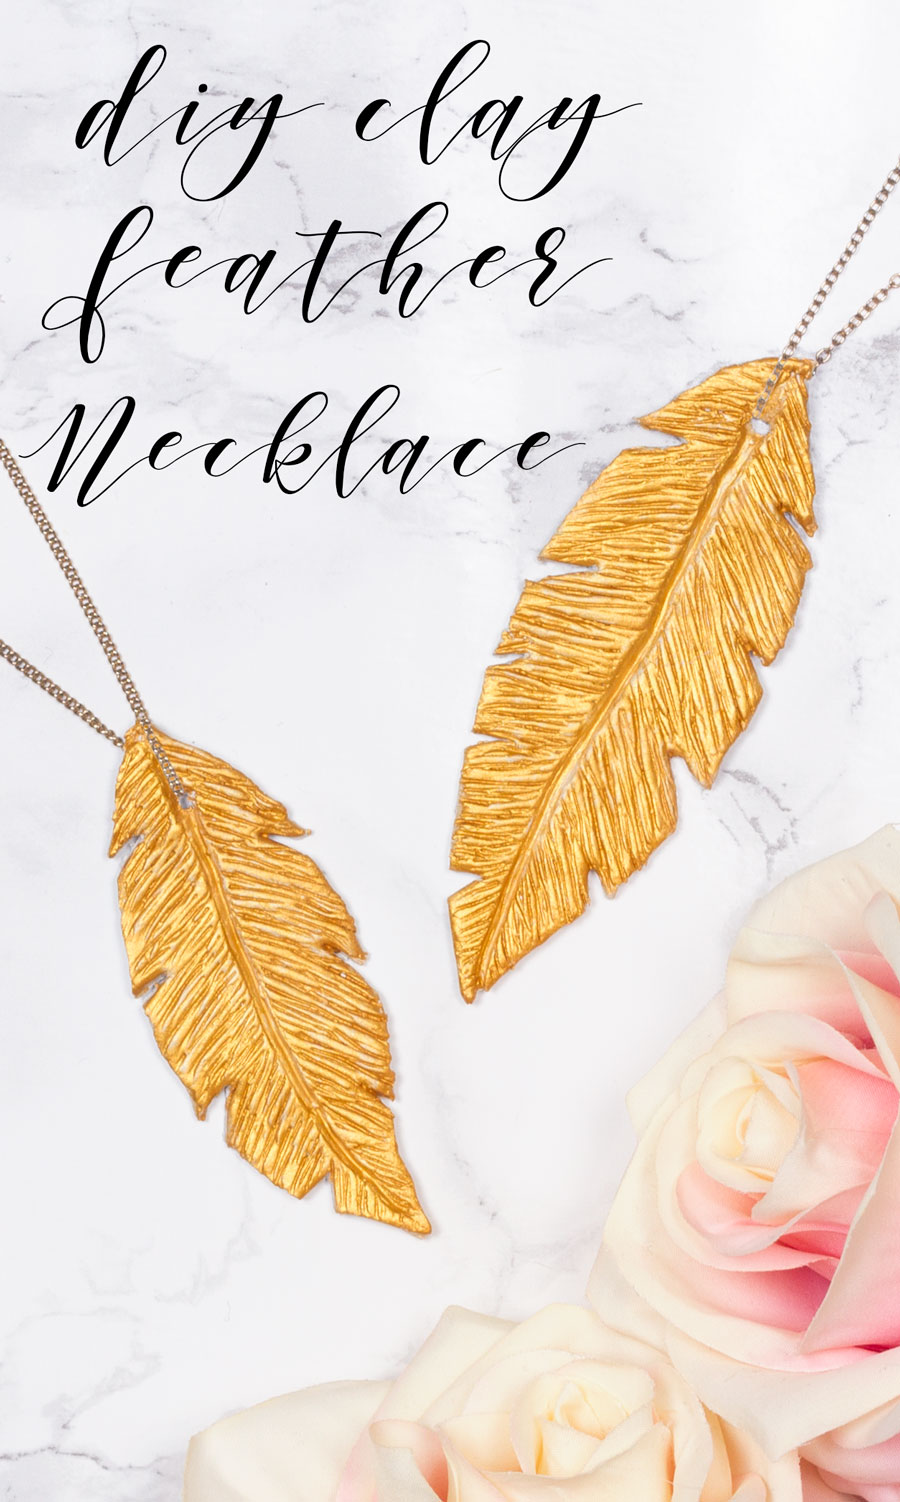 Step 3:  Once the clay is dry, cover the feathers in gold paint. Try not to paint it on too thickly as you don't want to lose the texture of the feather. Paint another coat if necessary and leave to dry.Finally, add your gold chain through the hole and your necklace is complete!  Subscribe to my  newsletter to receive fun craft ideas, offers and freebies!